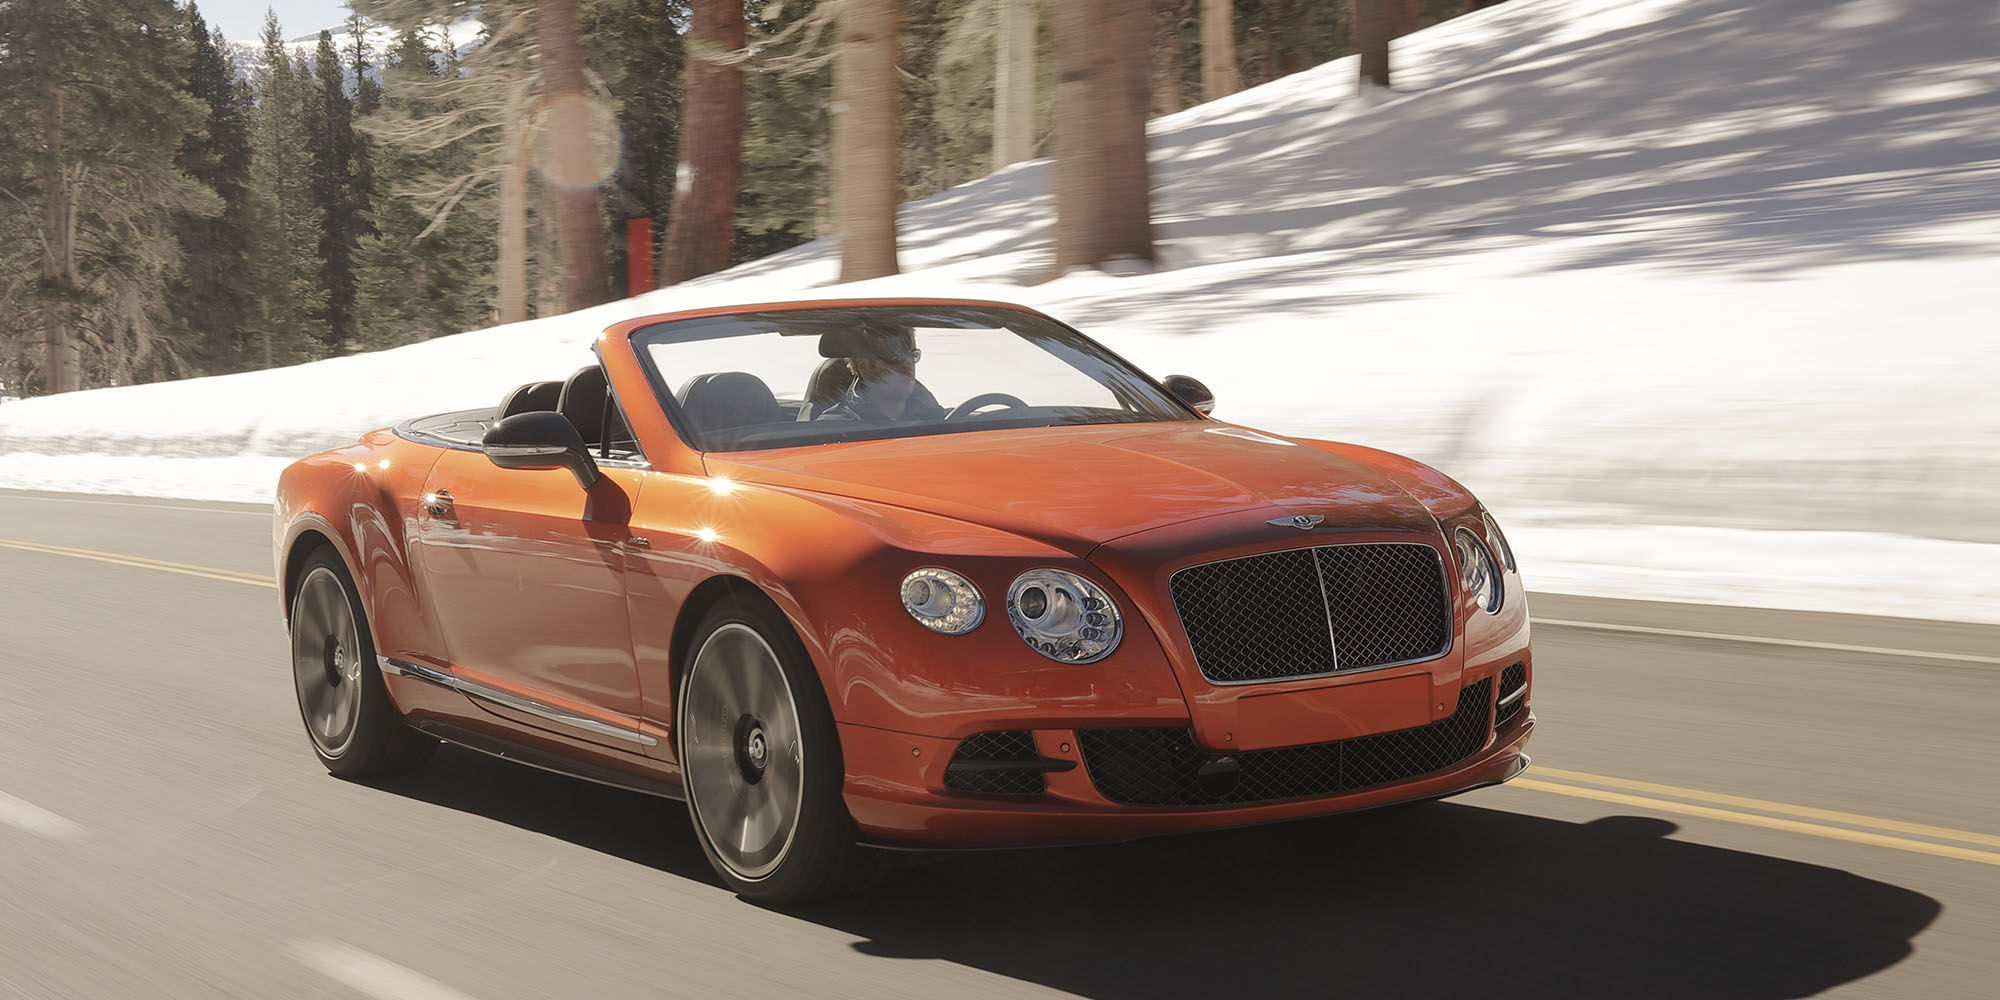 Continental GT W12 Speed Convertible